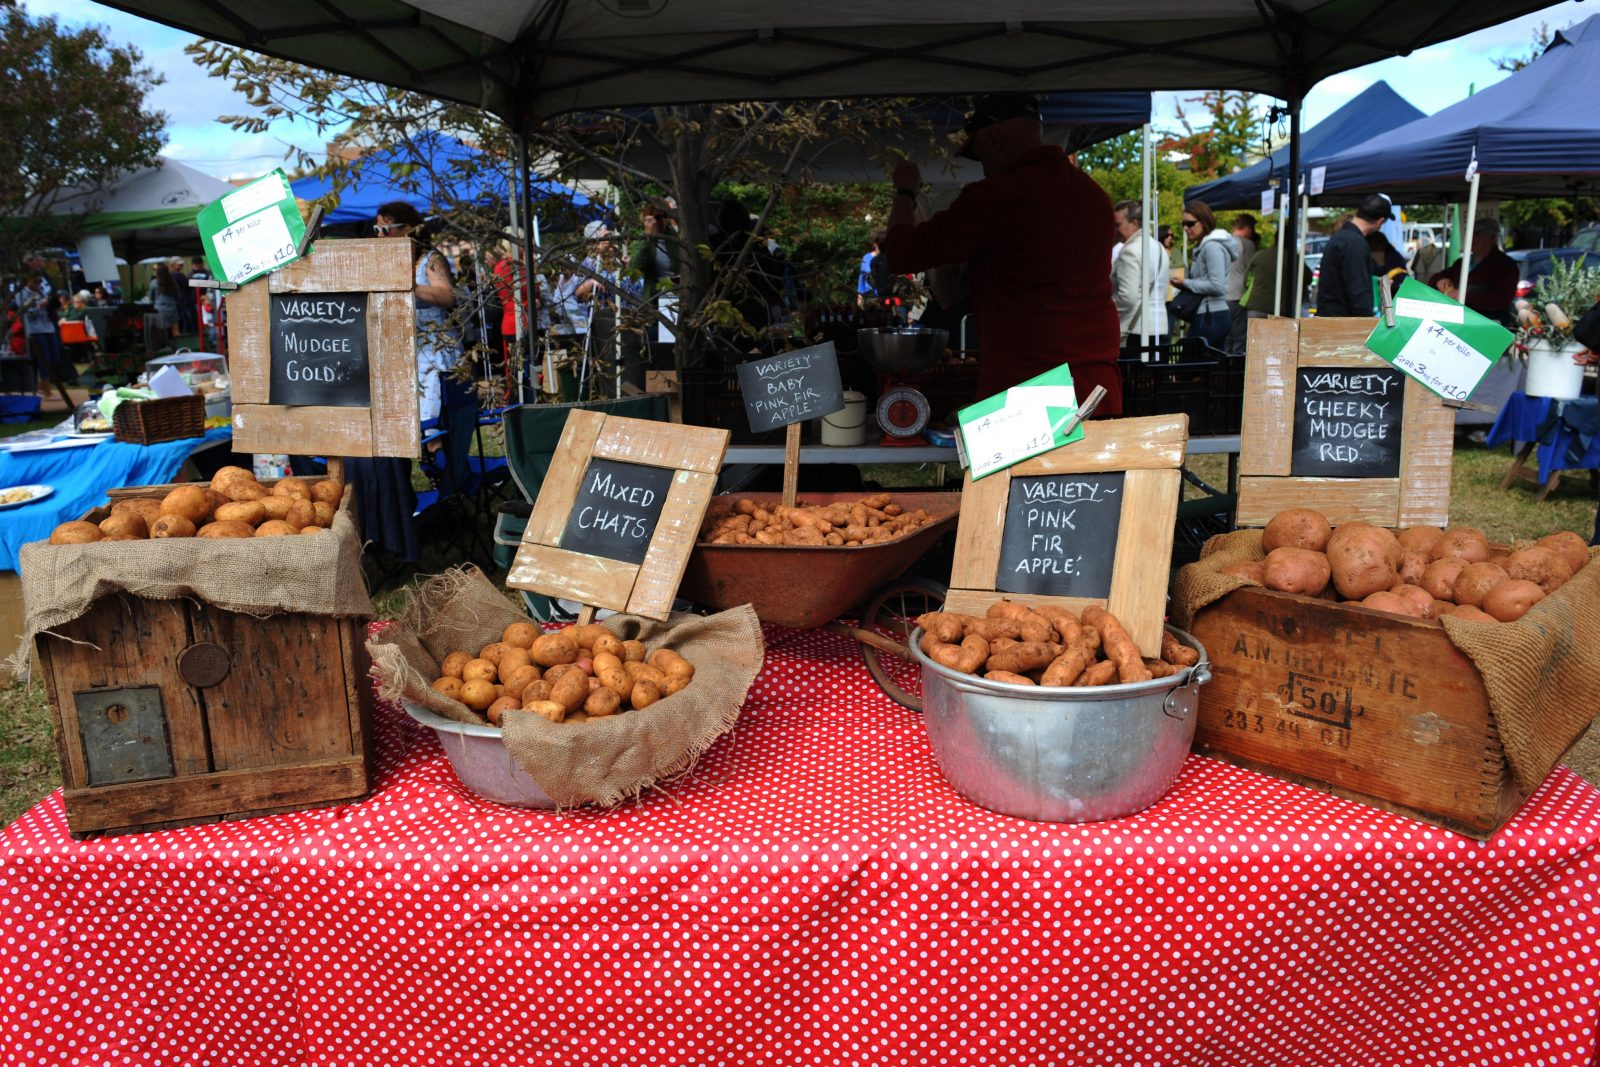 Lawson Park Markets